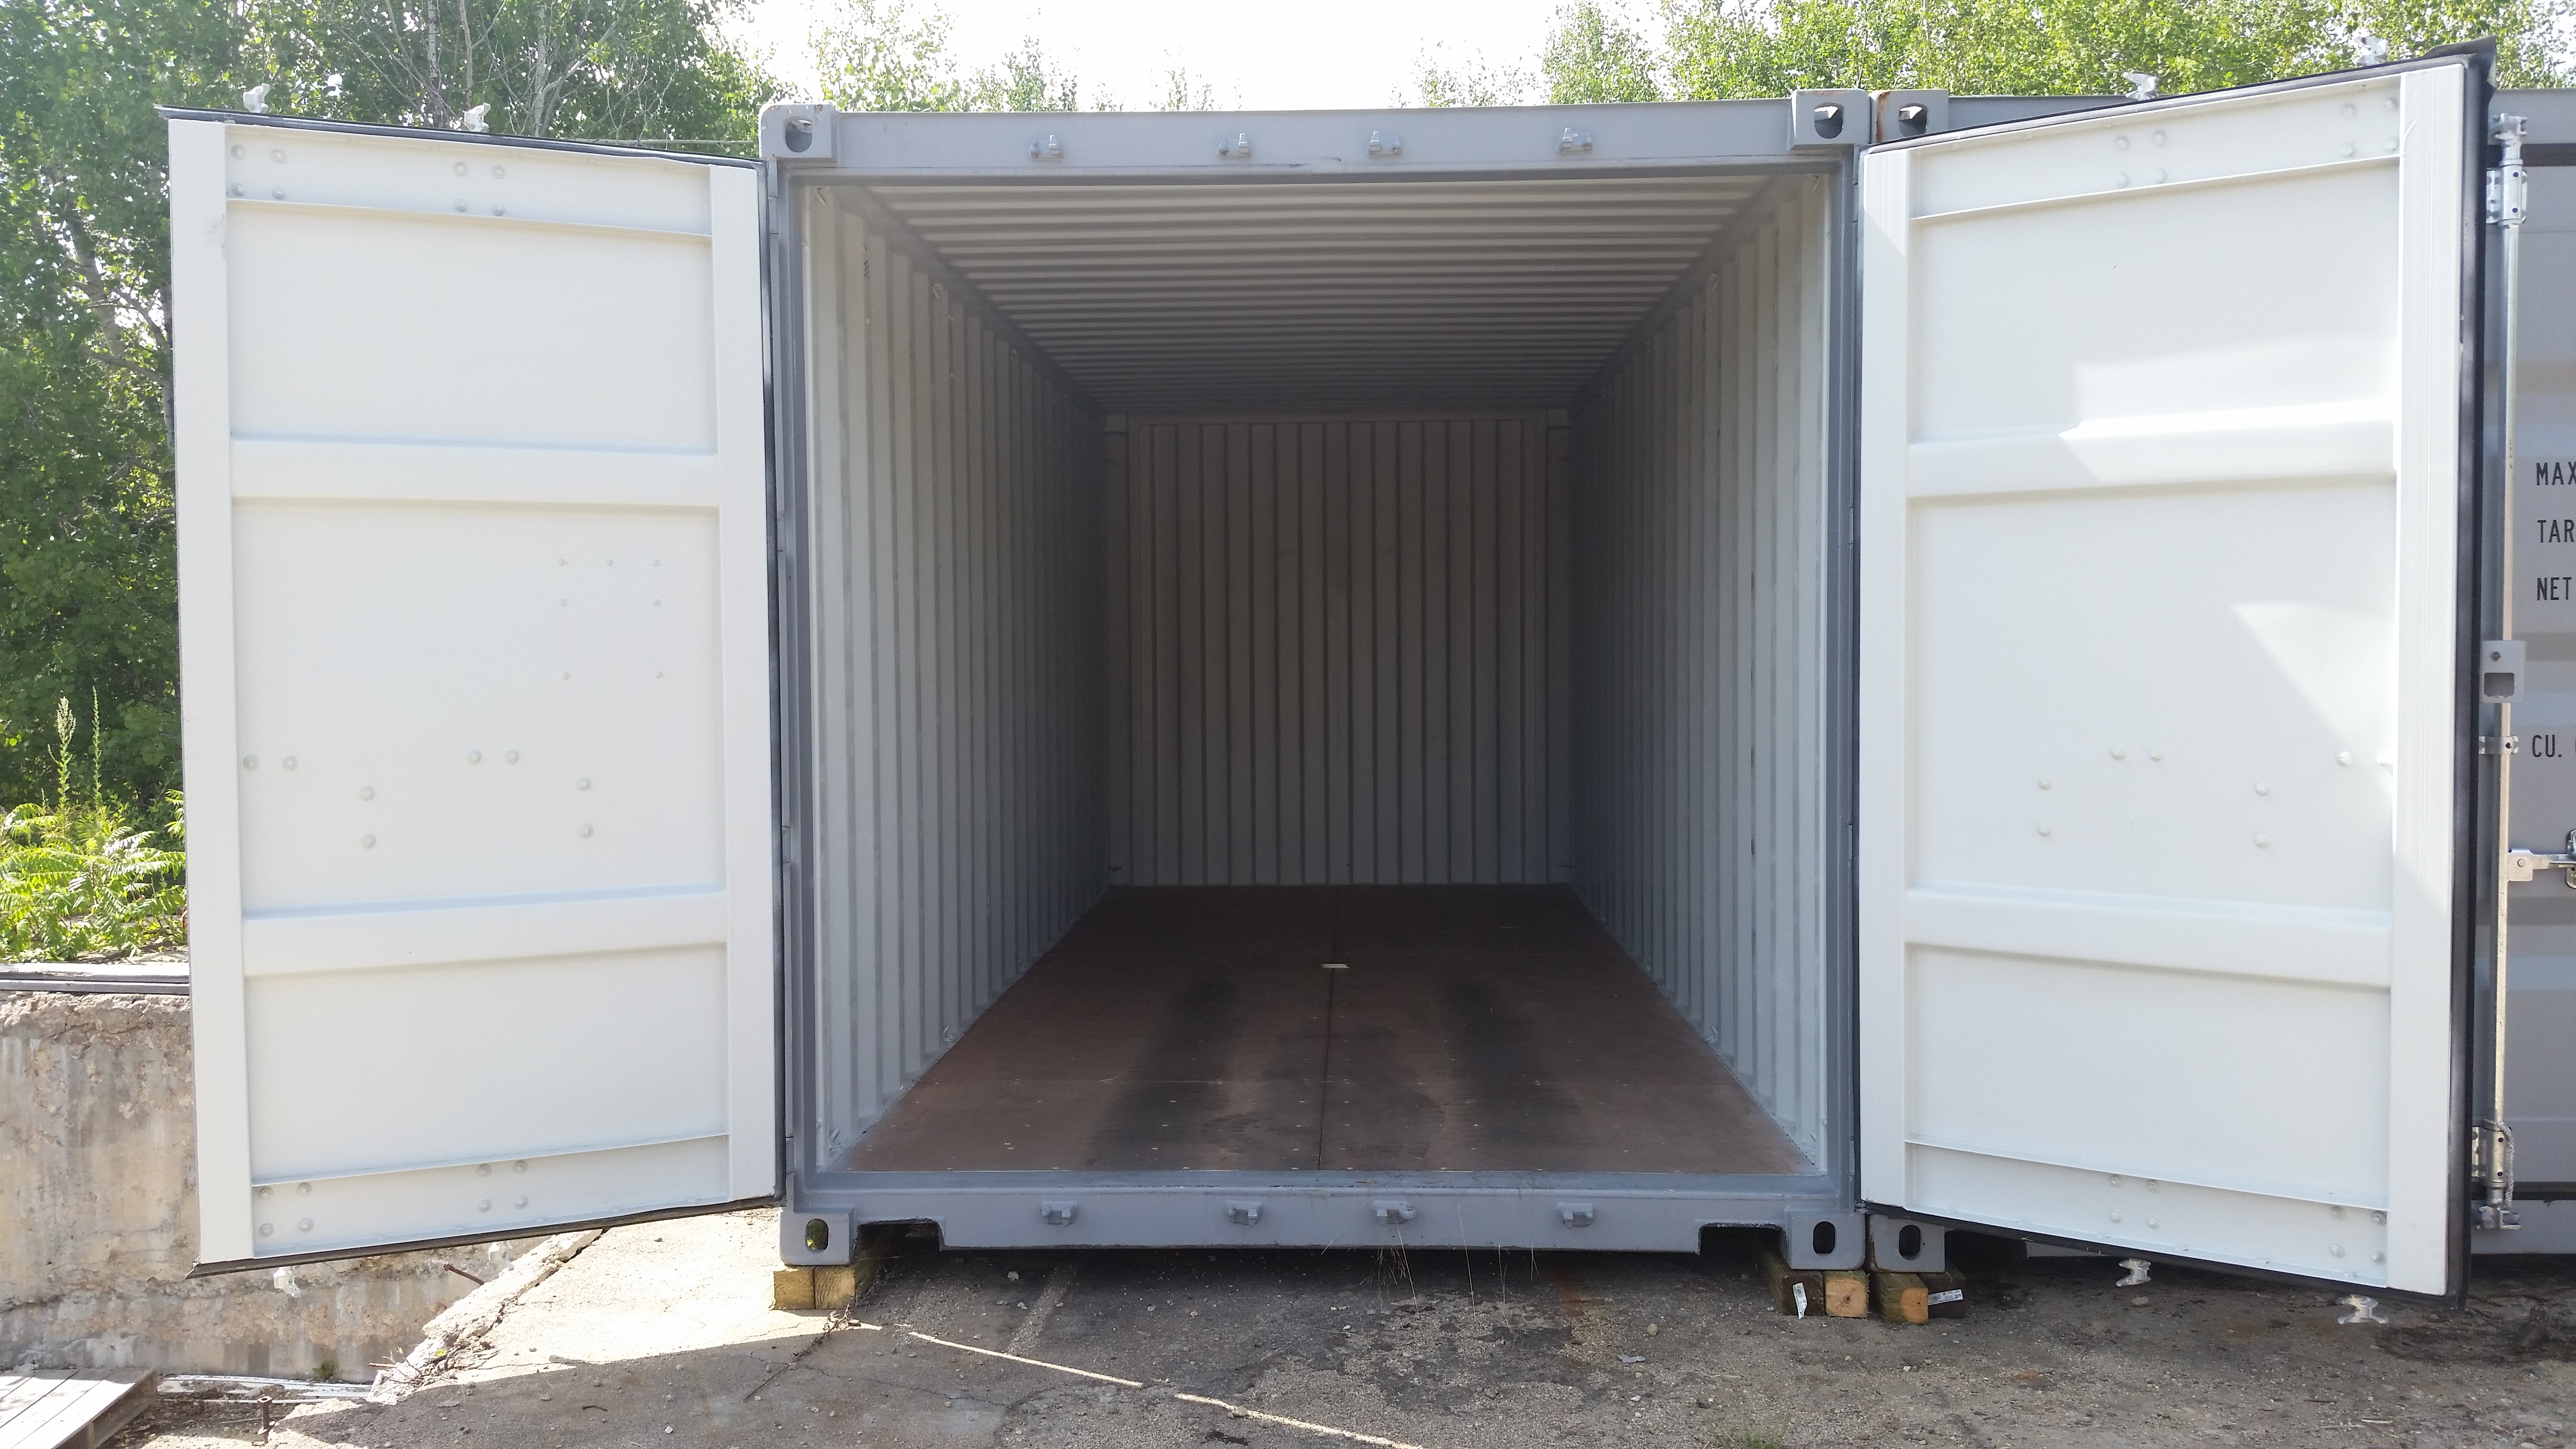 An empty storage container with its doors open